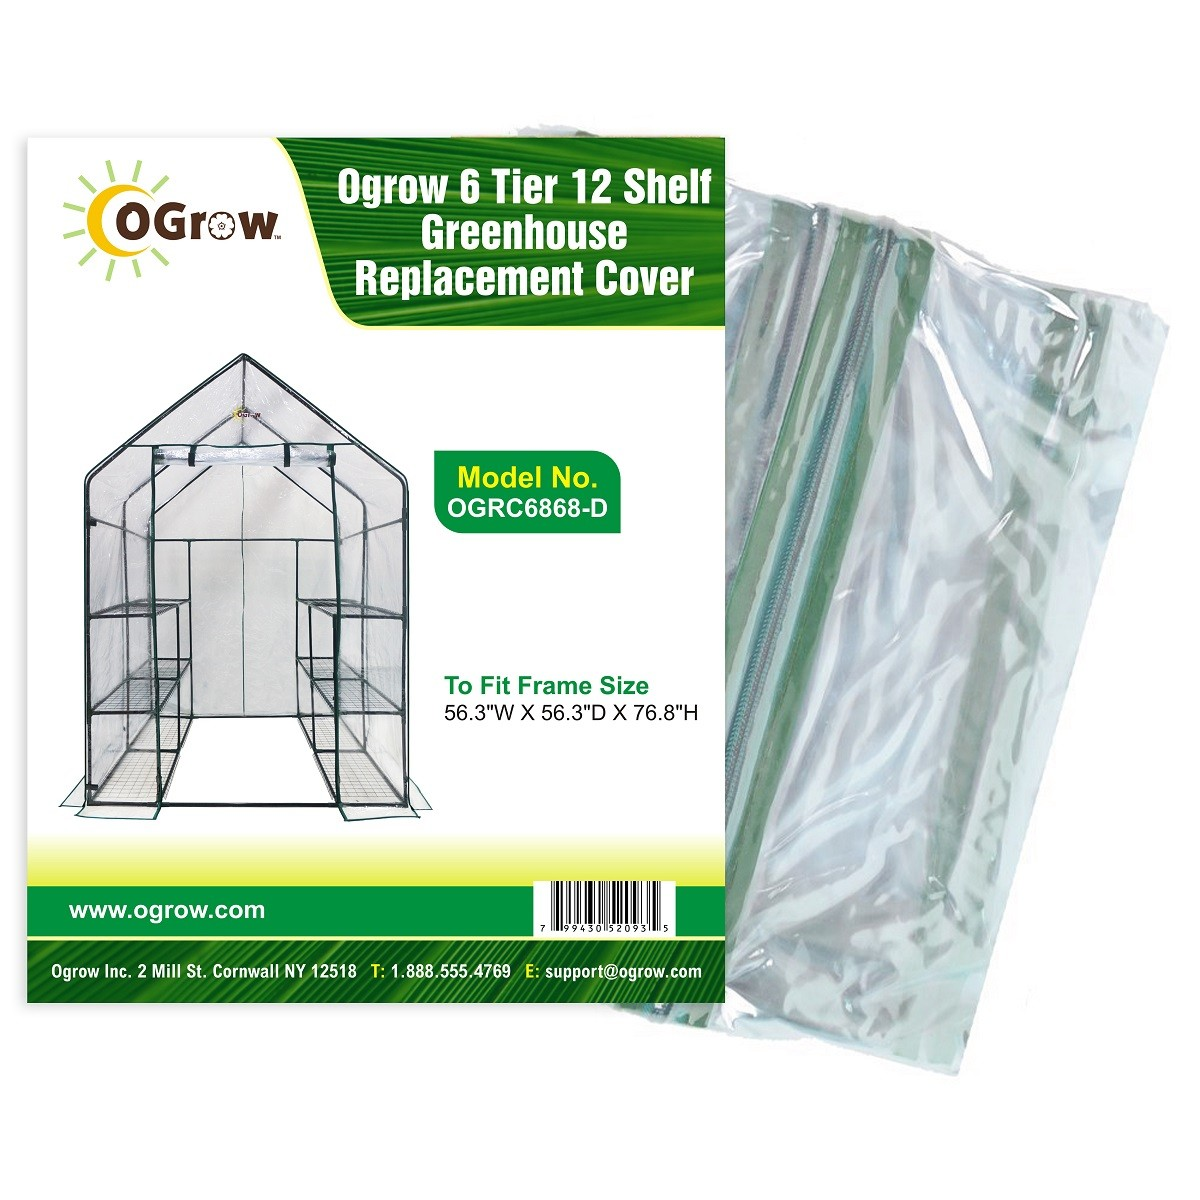 """2 Tier 8 Shelf Plastic PVC Greenhouse Replacement Cover - 77"""" W x 56"""" D x 56"""" H - Clear"""